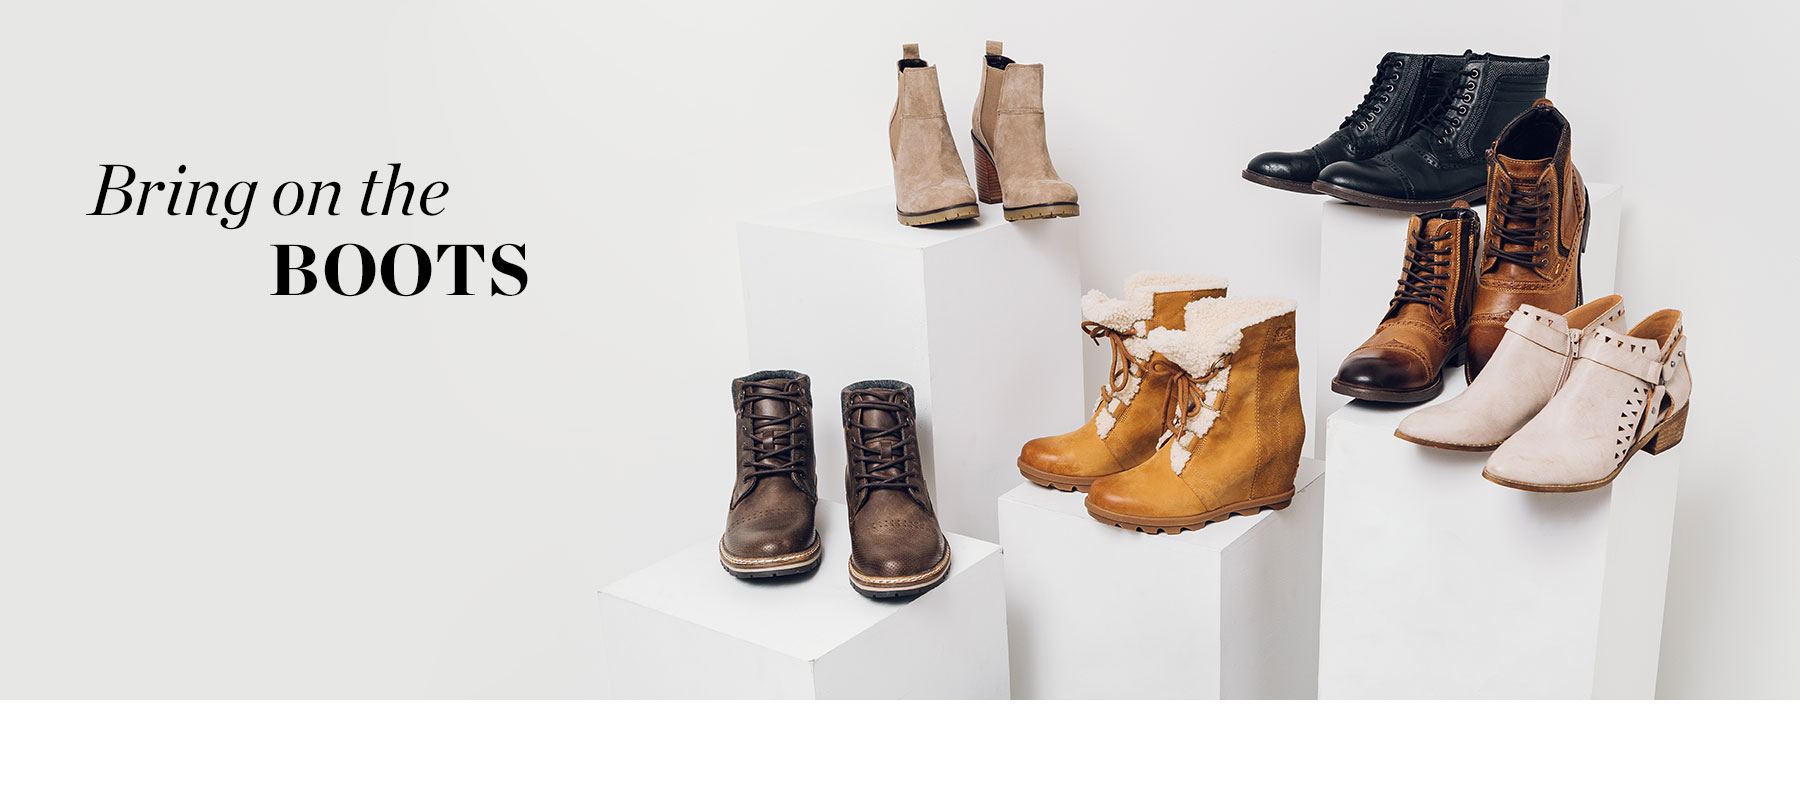 Bring on the Boots - 6 pairs of Men's and Women's boots